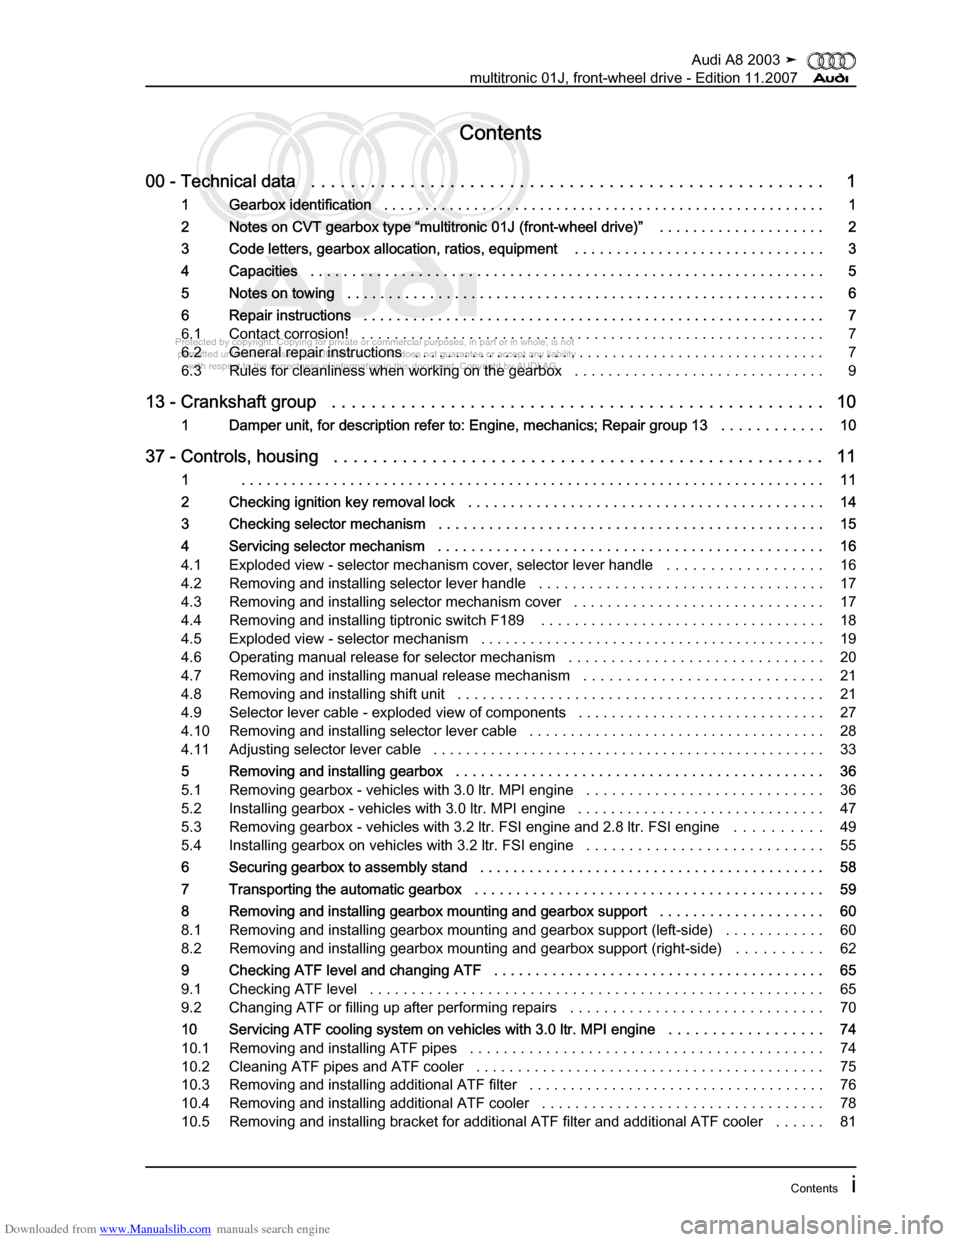 AUDI A8 2003 D3 / 2.G Multitronic System Workshop Manual, Page 3